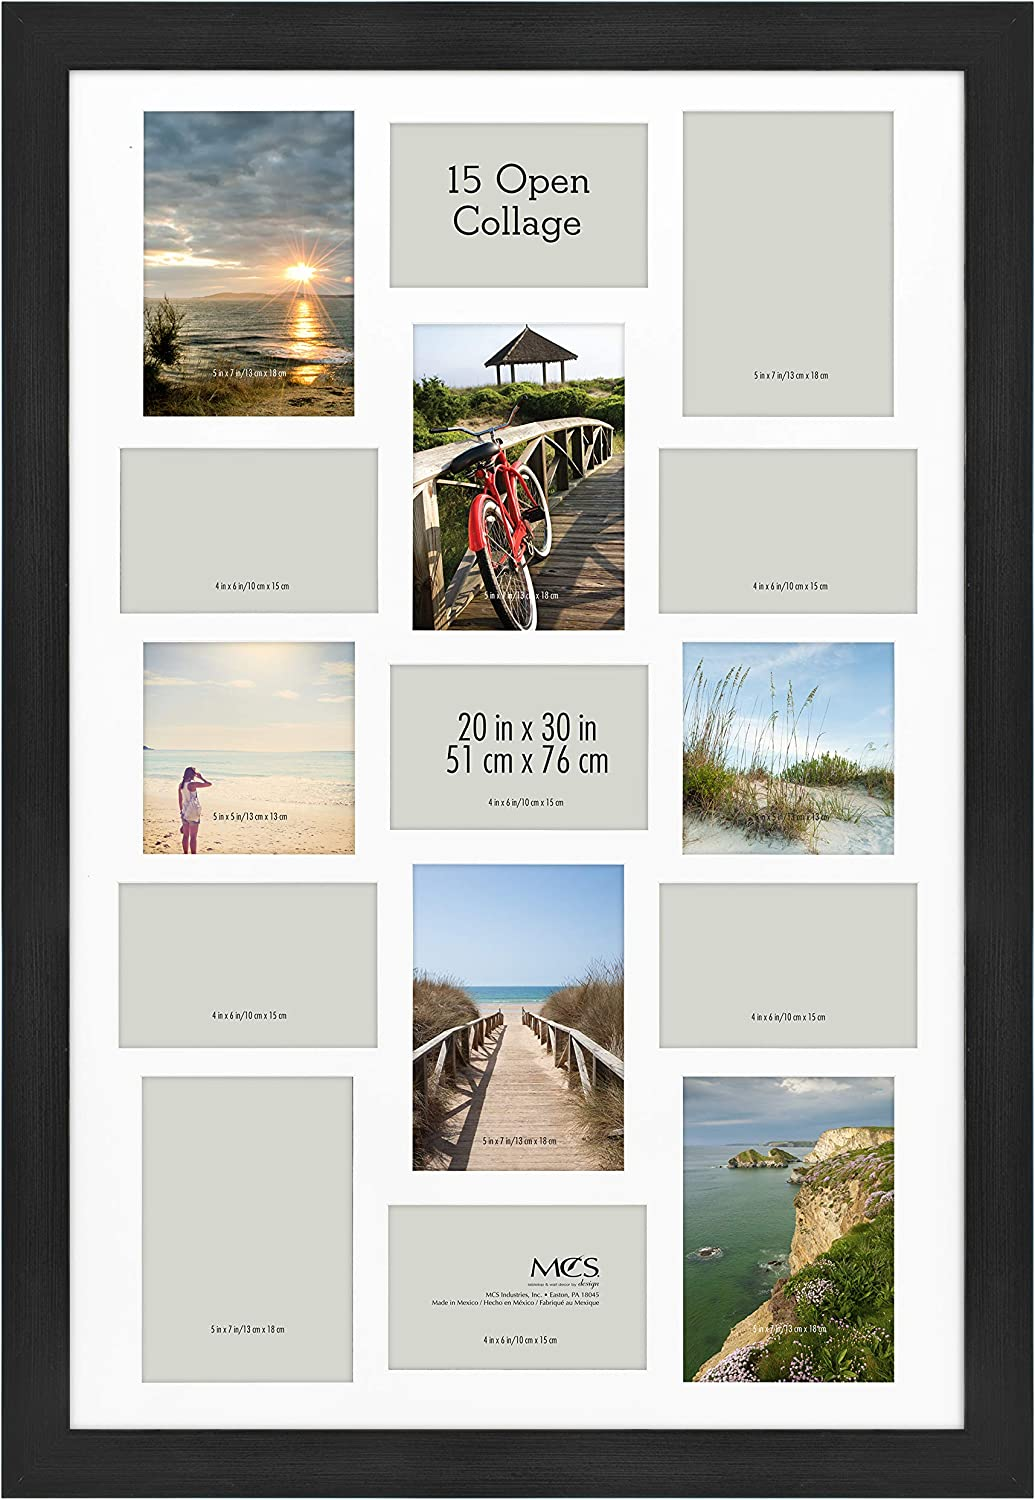 MCS specialty shop Museum Collage Poster Frame 30 Onyx x 20 Ranking TOP17